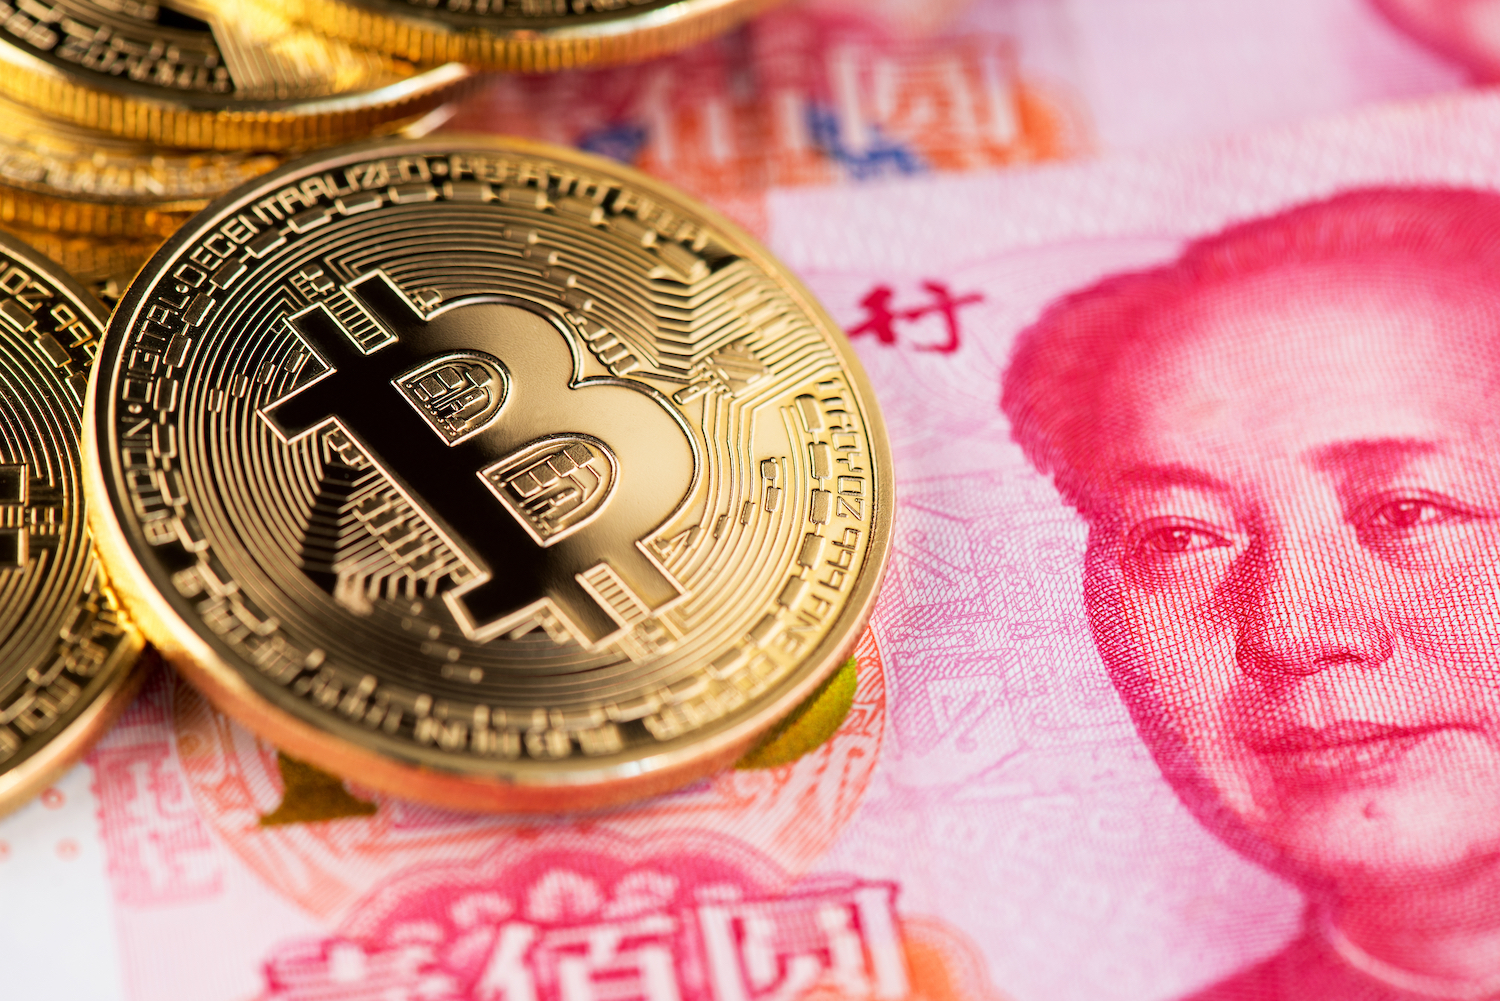 $60 Million and Rising: China's Crypto Funds Try Lending to Beat Bear Market